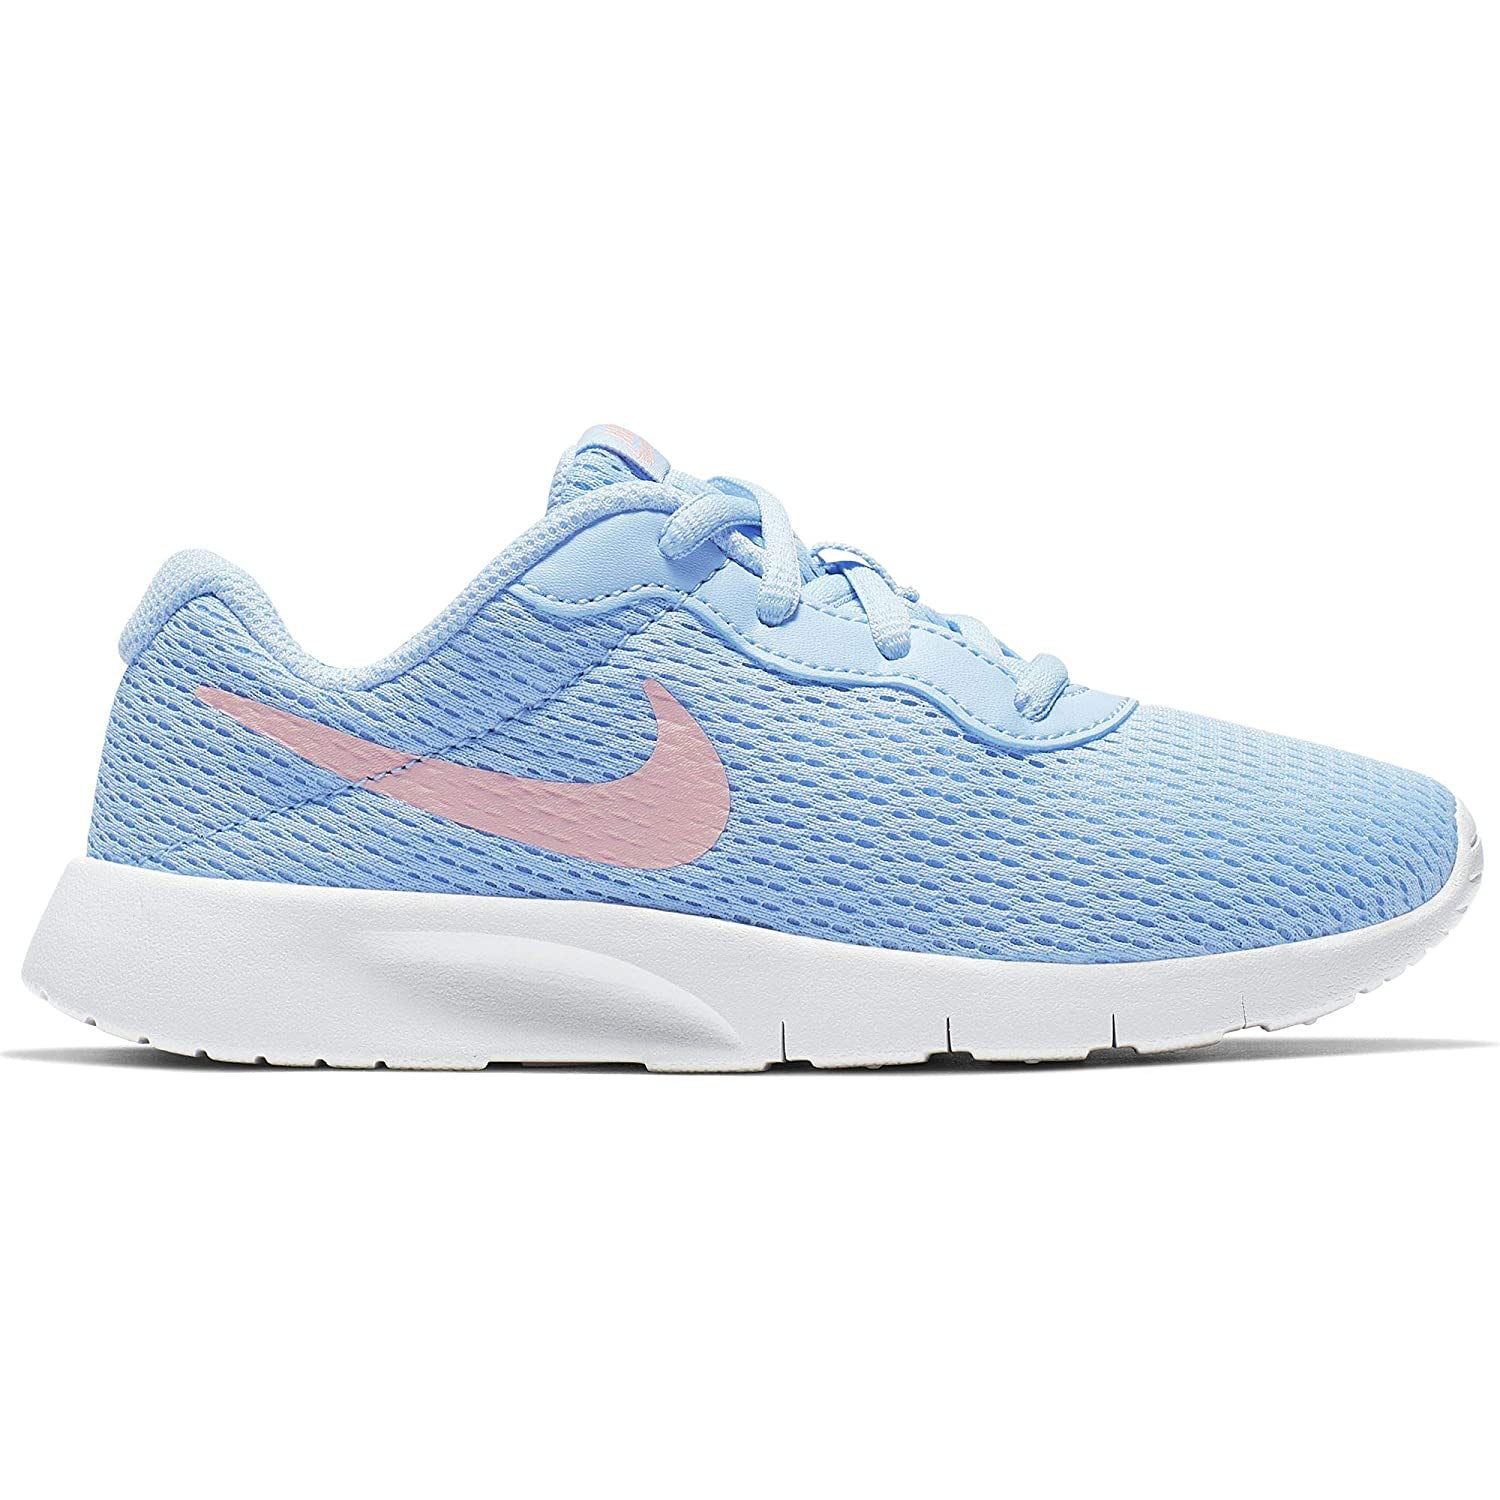 a6c894d0ddde9 Amazon.com | Nike Girl's Tanjun Shoe Psychic Blue/Bleached Coral ...